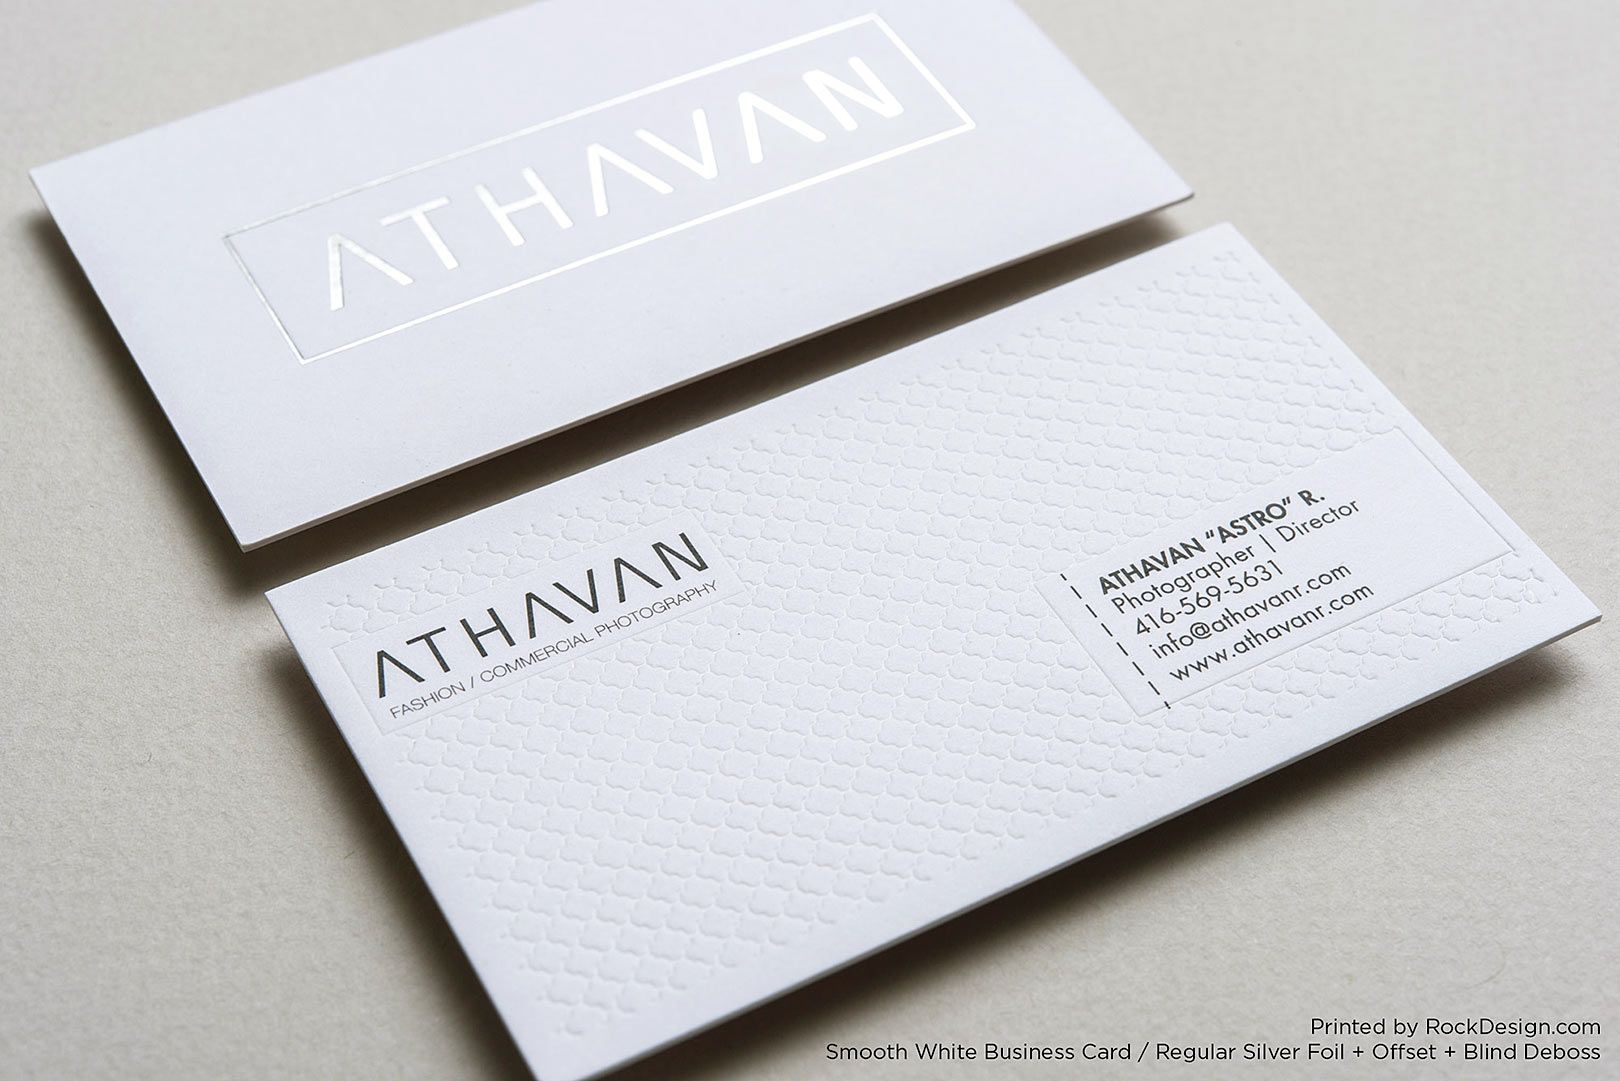 Pin by l huyn on namecard pinterest business cards business cards magicingreecefo Images